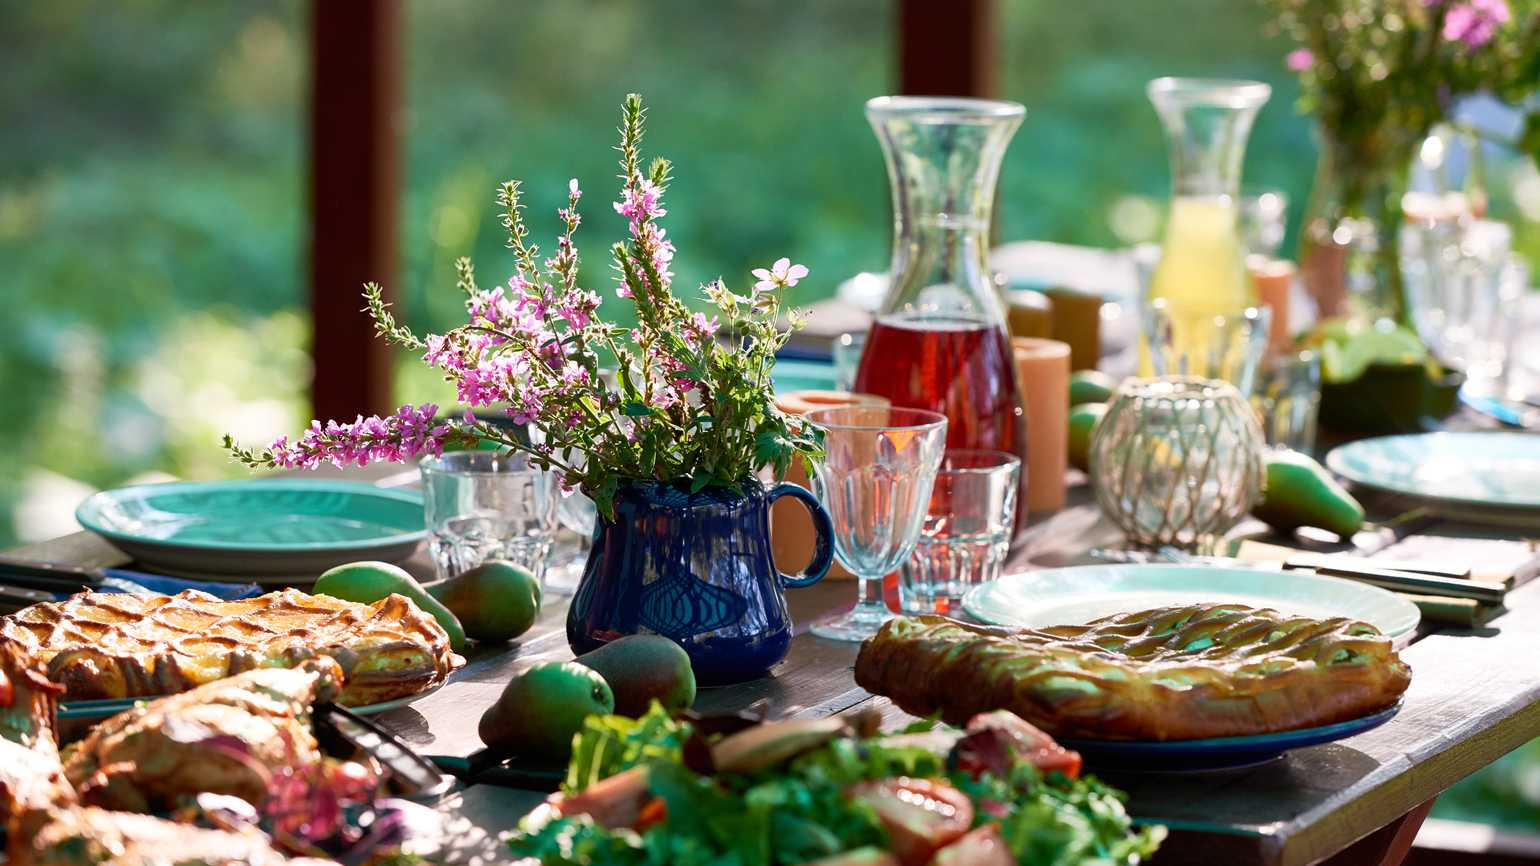 Festive table with food and drinks on it